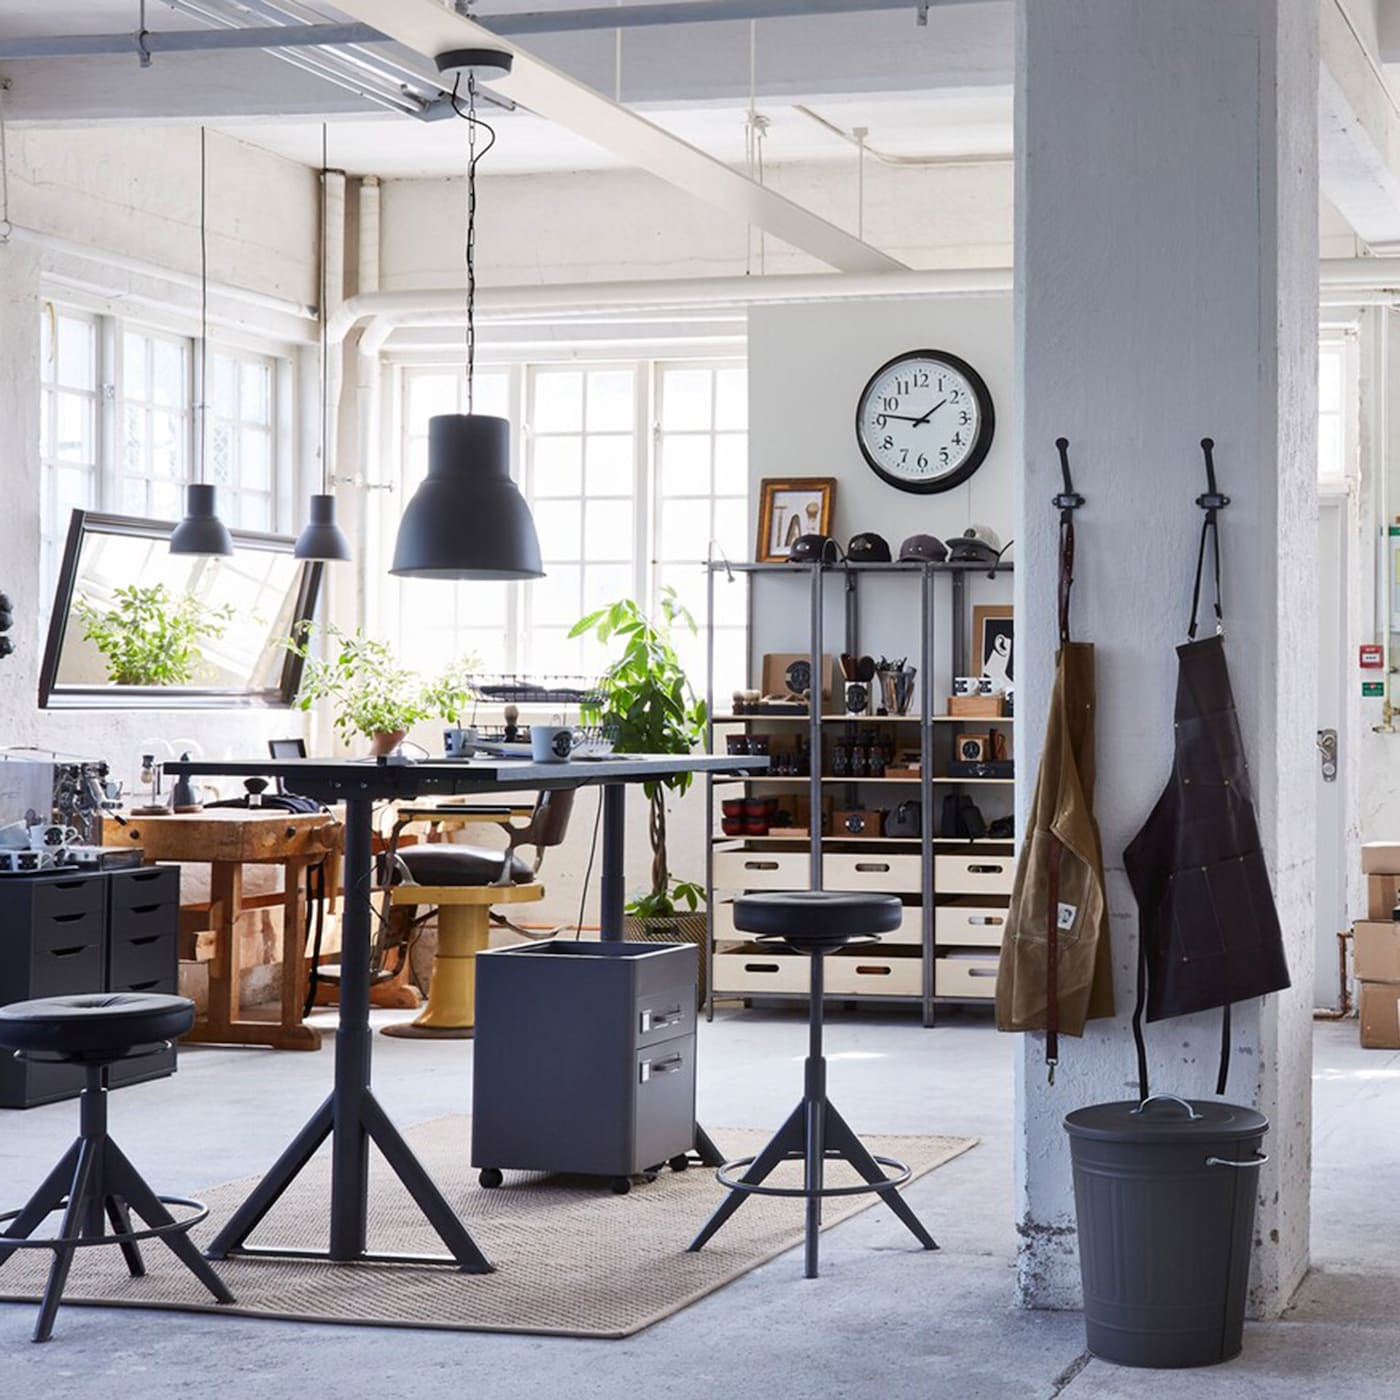 IKEA IDÅSEN office furniture is flexible for big businesses to small startups like this one in an industrial white workspace. Desks can be controlled by an app.